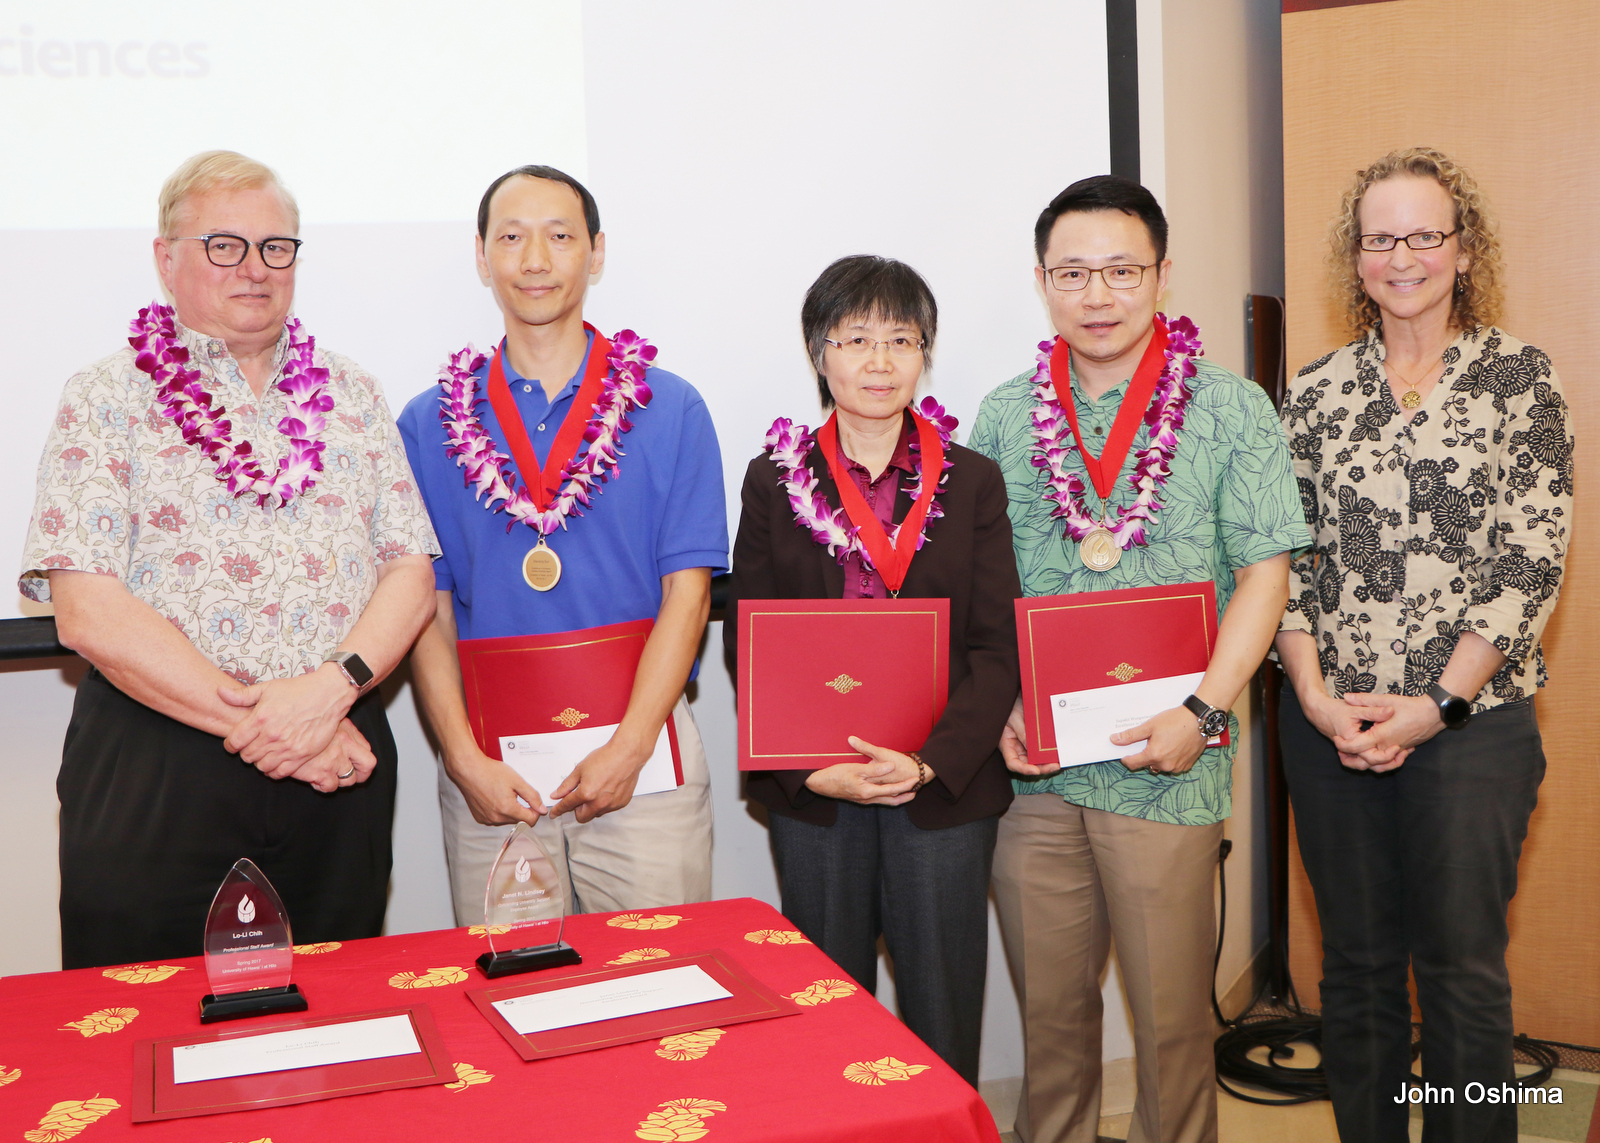 Group stands together, chancellor and recipients have lei and each recipient holds certificate.